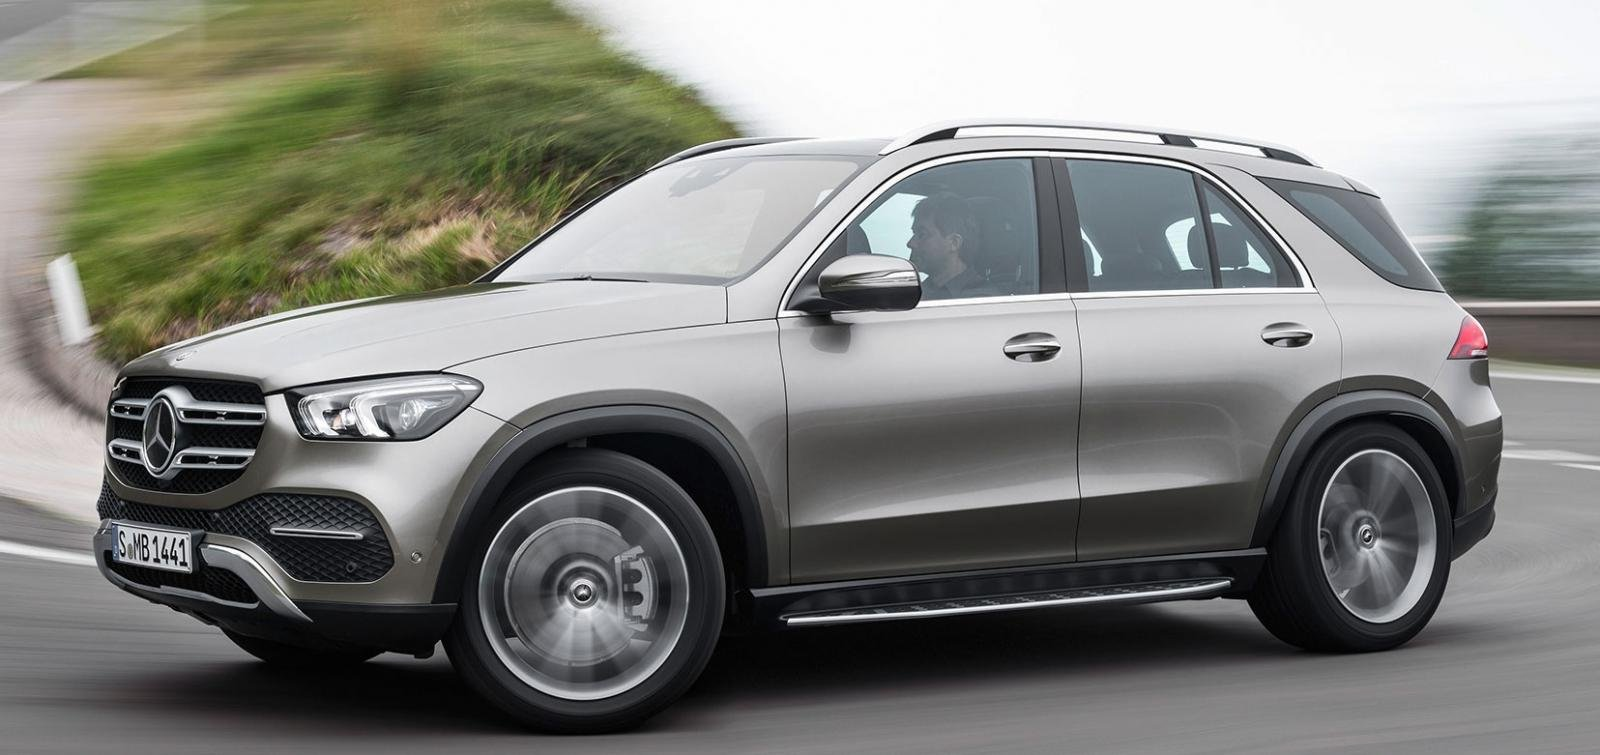 SUVs at Auto Expo 2020 - Upcoming Mercedes Benz GLE